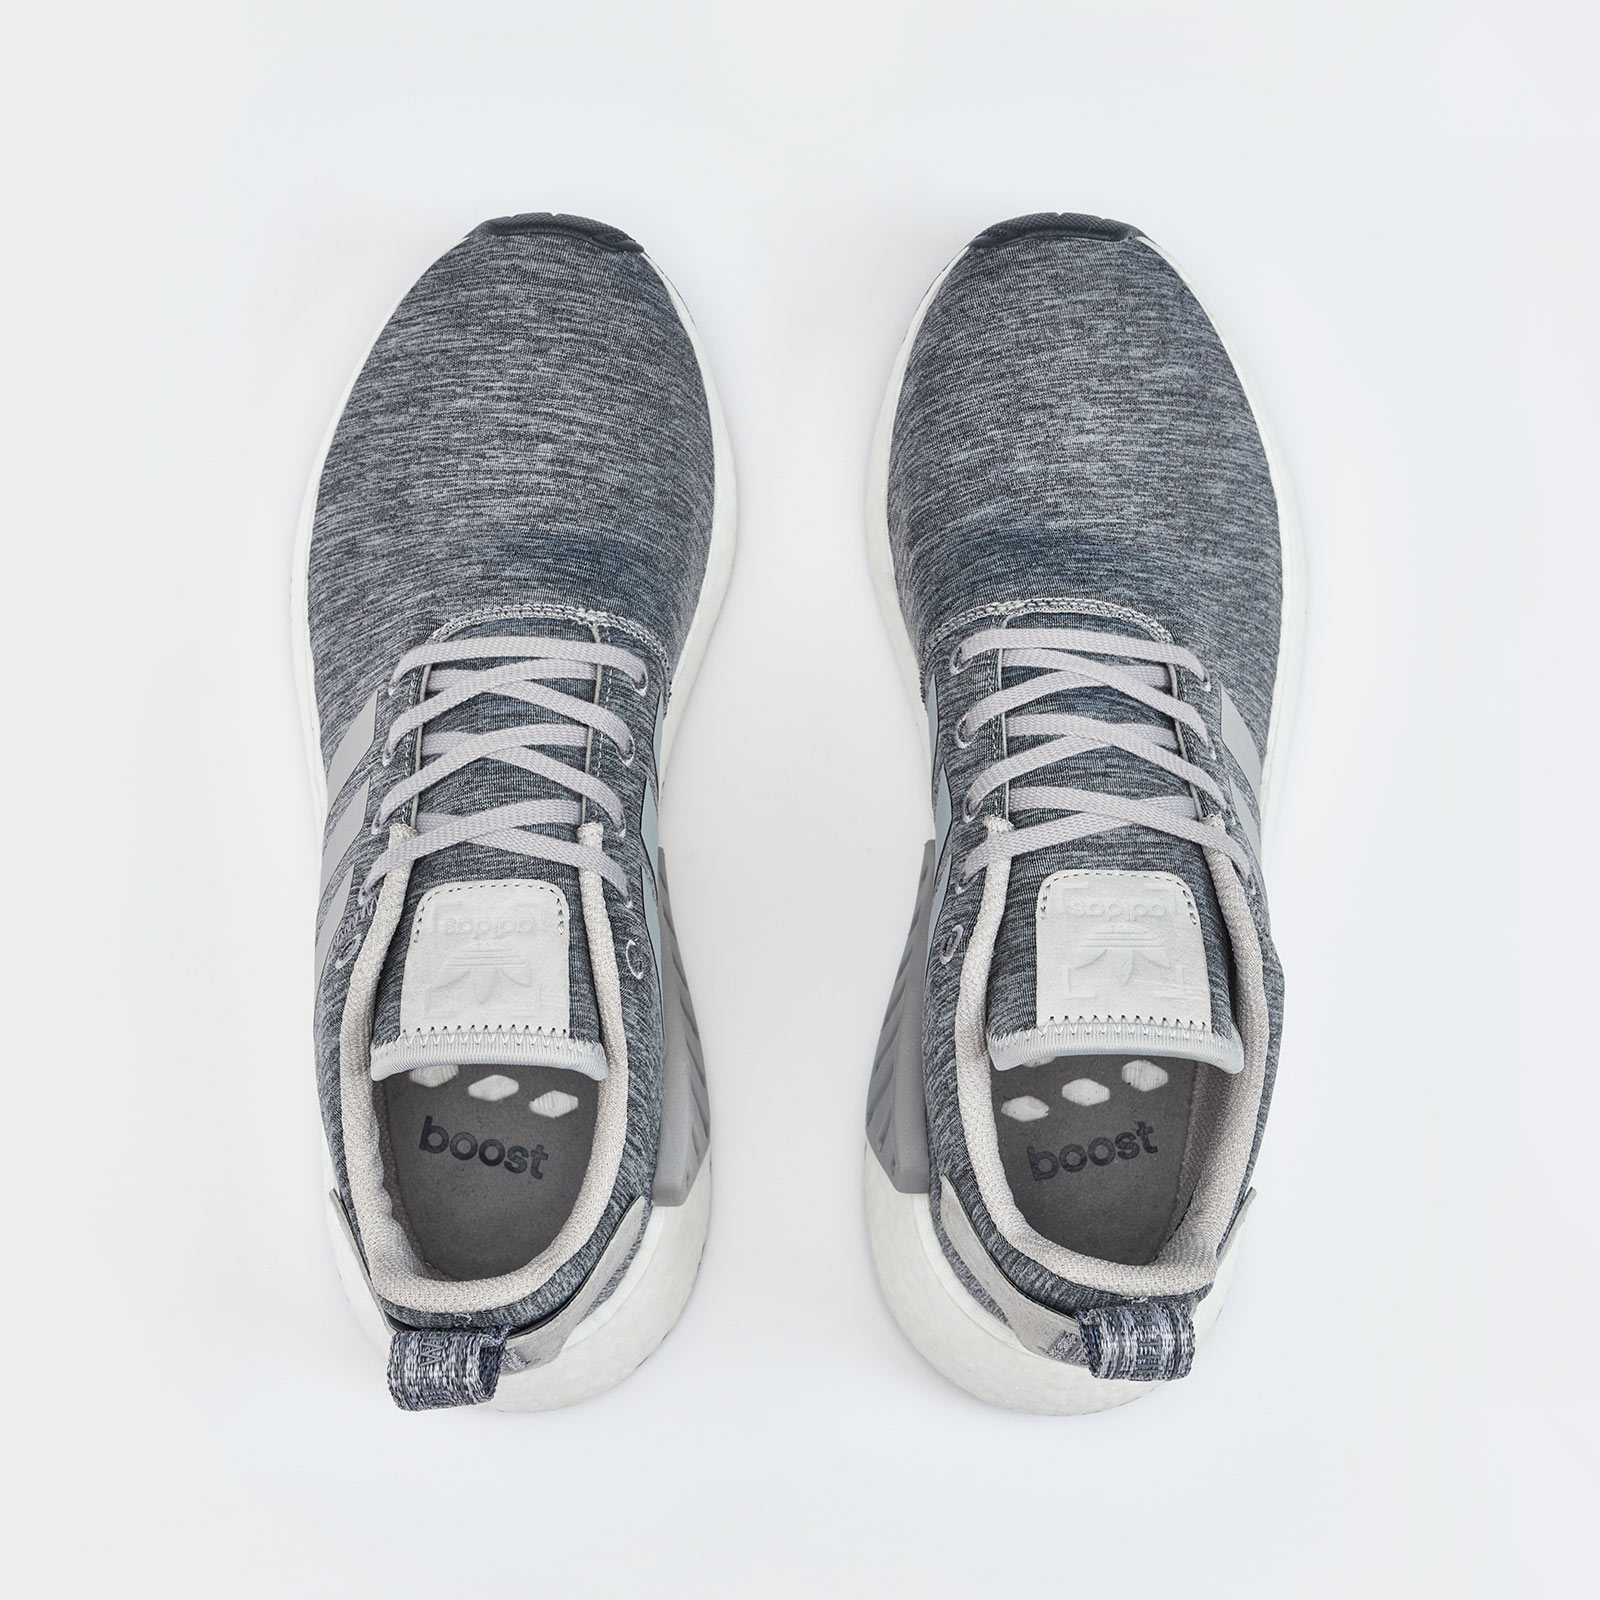 45f8e973a6d61 adidas NMD R2 - By2790 - Sneakersnstuff